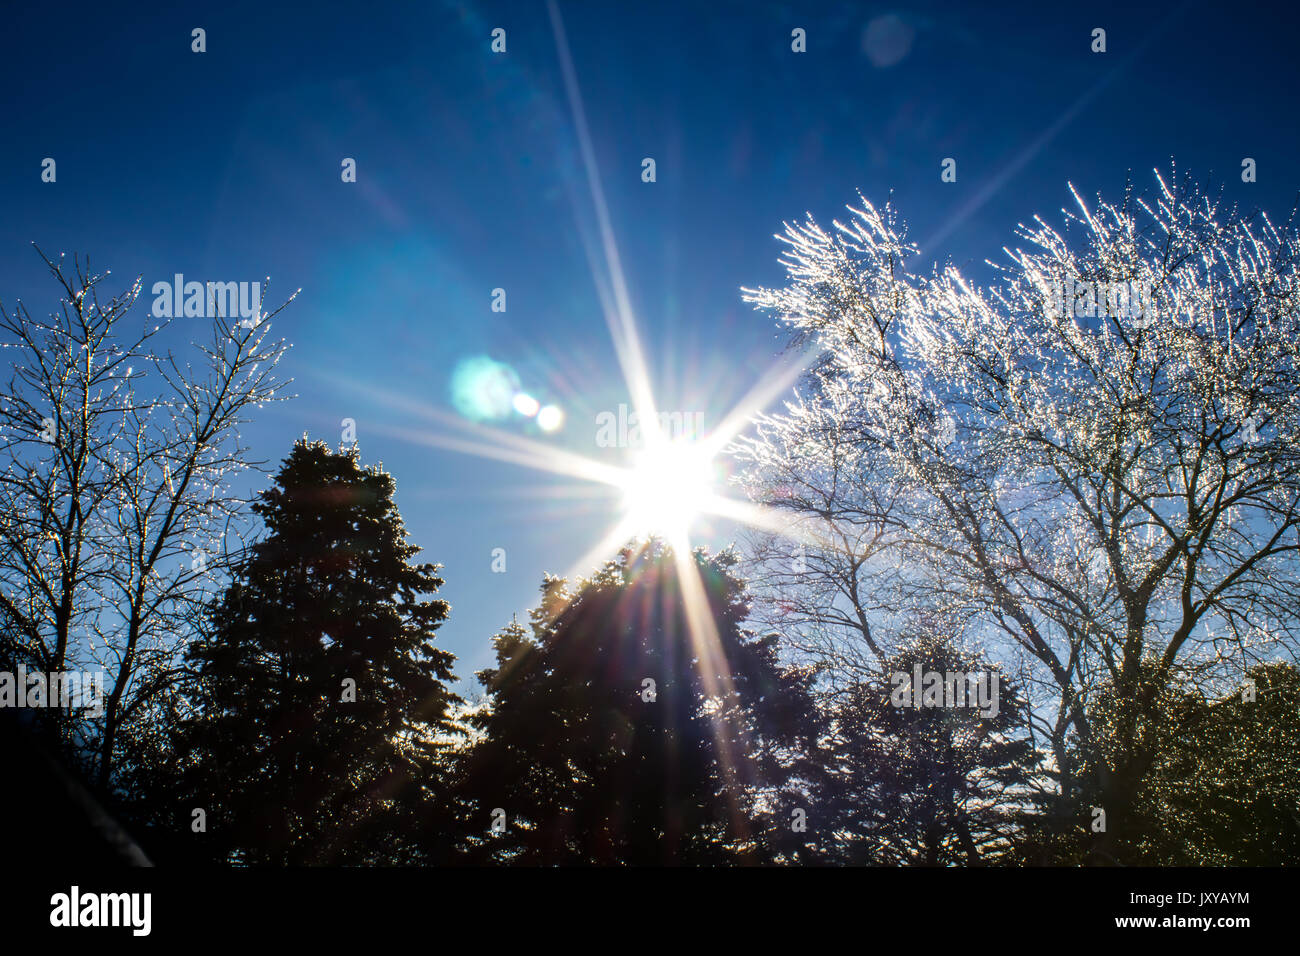 Glass-like ice in the bright sun. - Stock Image